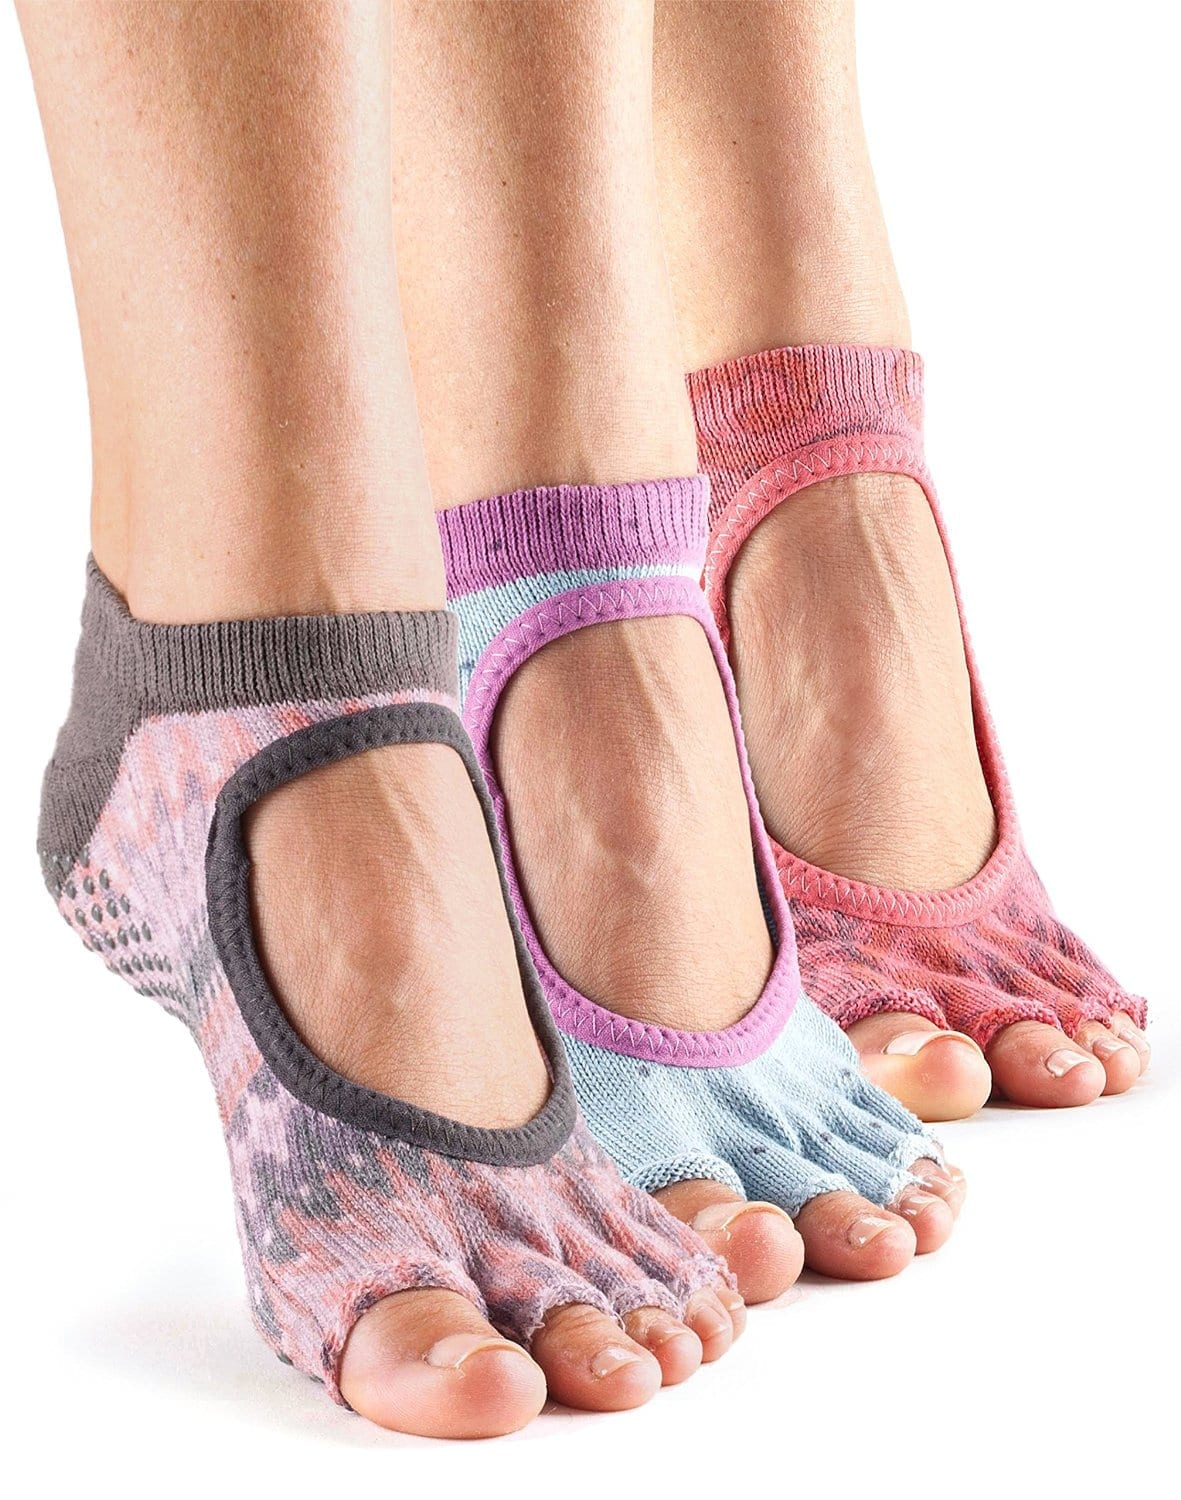 Best Treadmills For Home >> 4 ToeSox Toeless Yoga Socks & Yoga Socks with Toes Reviews